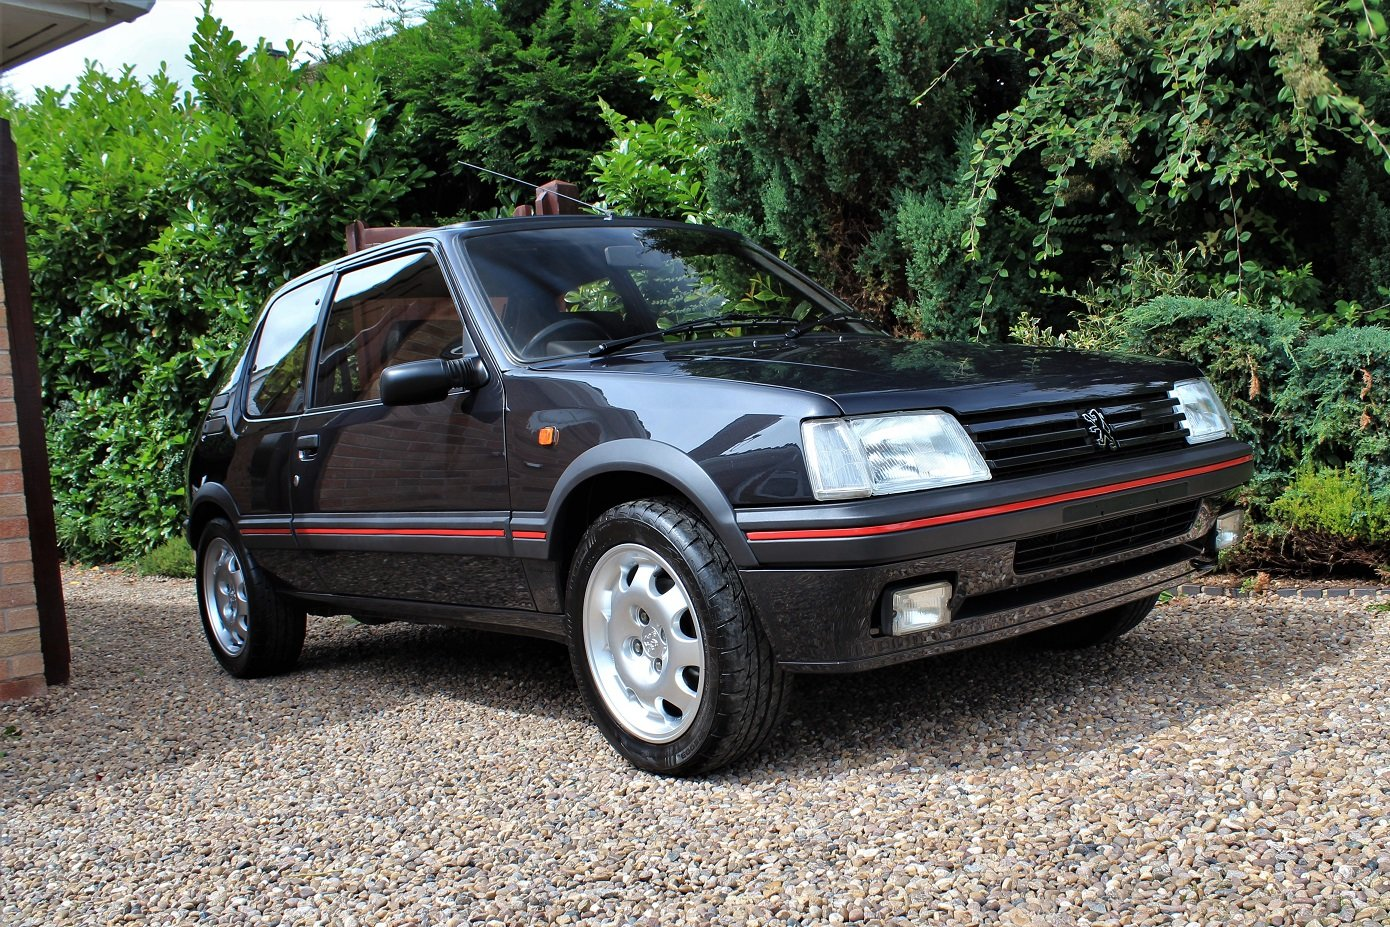 1991 Peugeot 205 GTI 3dr,65,534 miles from new For Sale (picture 3 of 6)